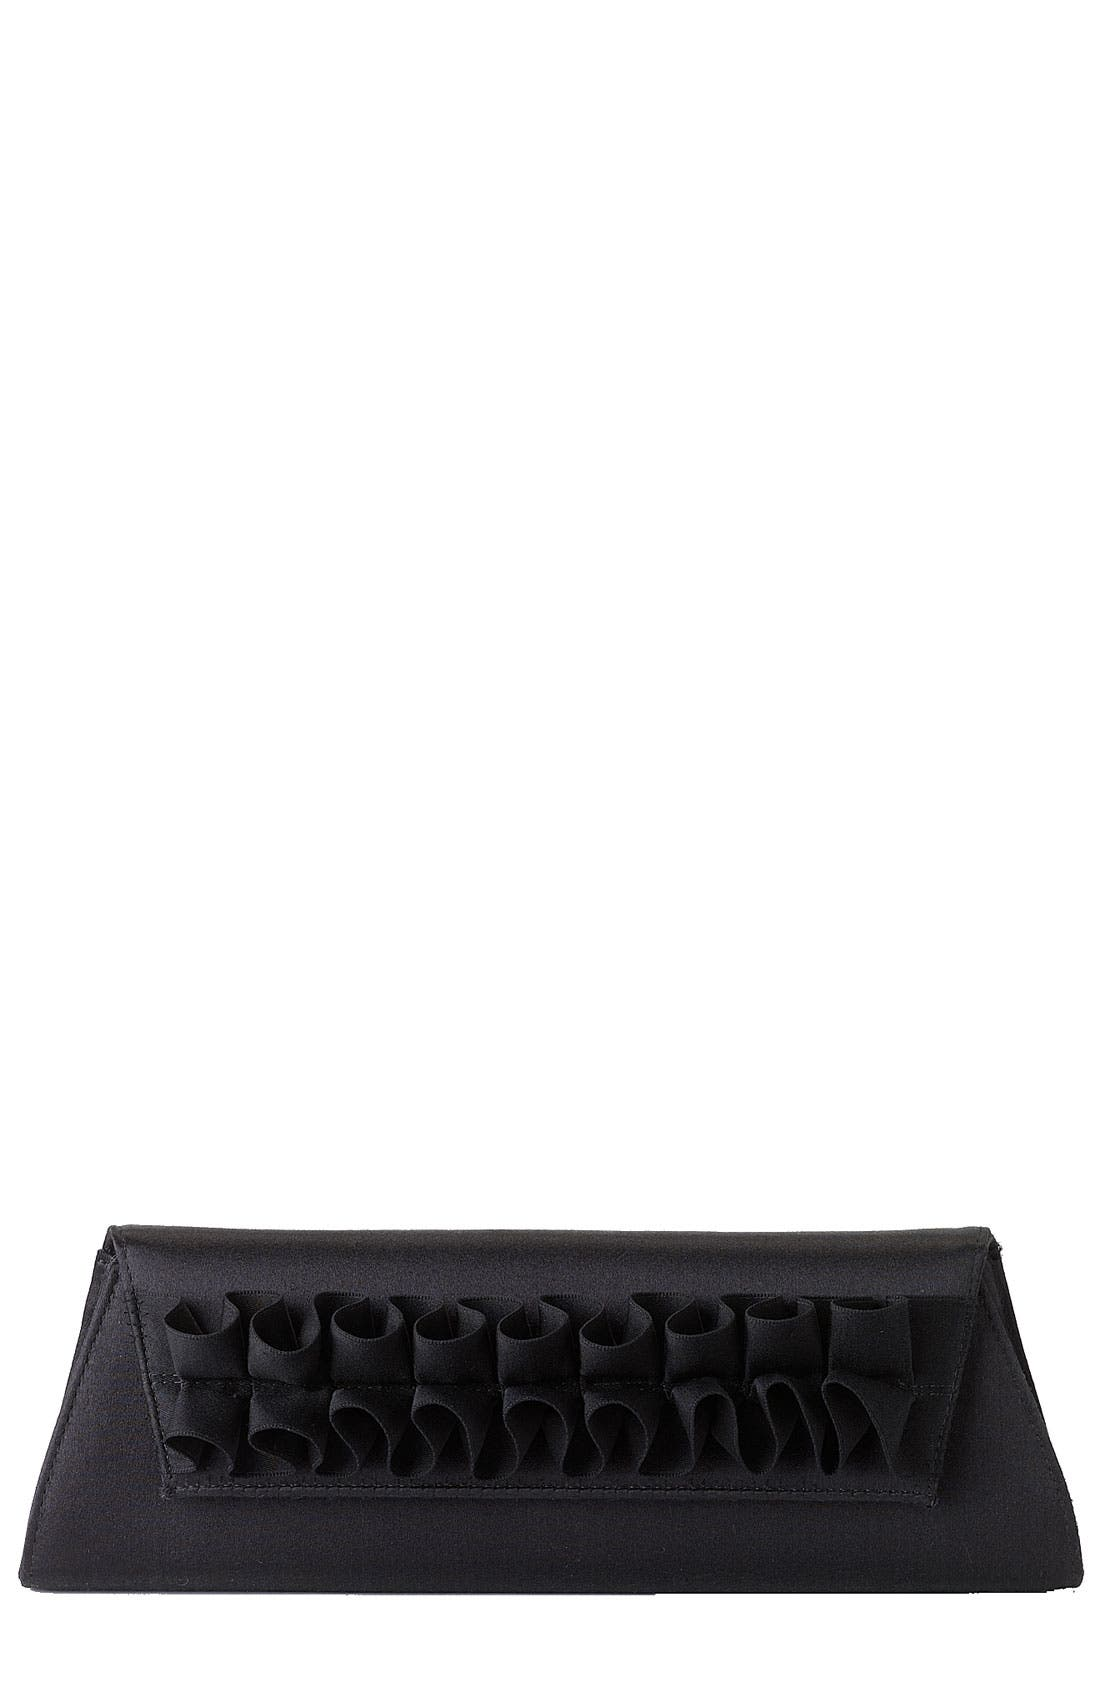 Alternate Image 1 Selected - Stuart Weitzman 'Gigi' Clutch